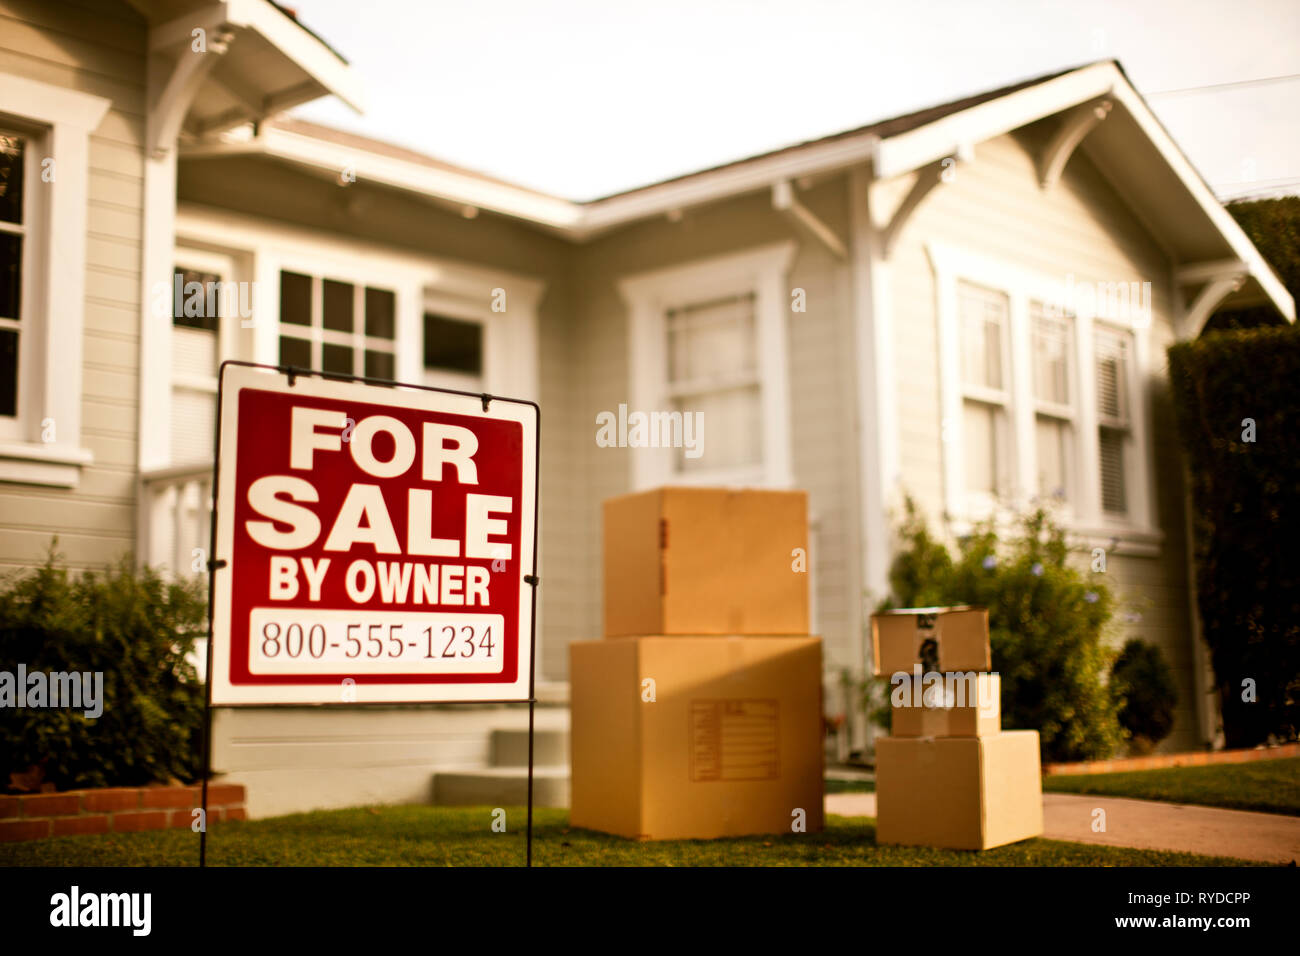 Exterior of house with for sale sign outside. - Stock Image